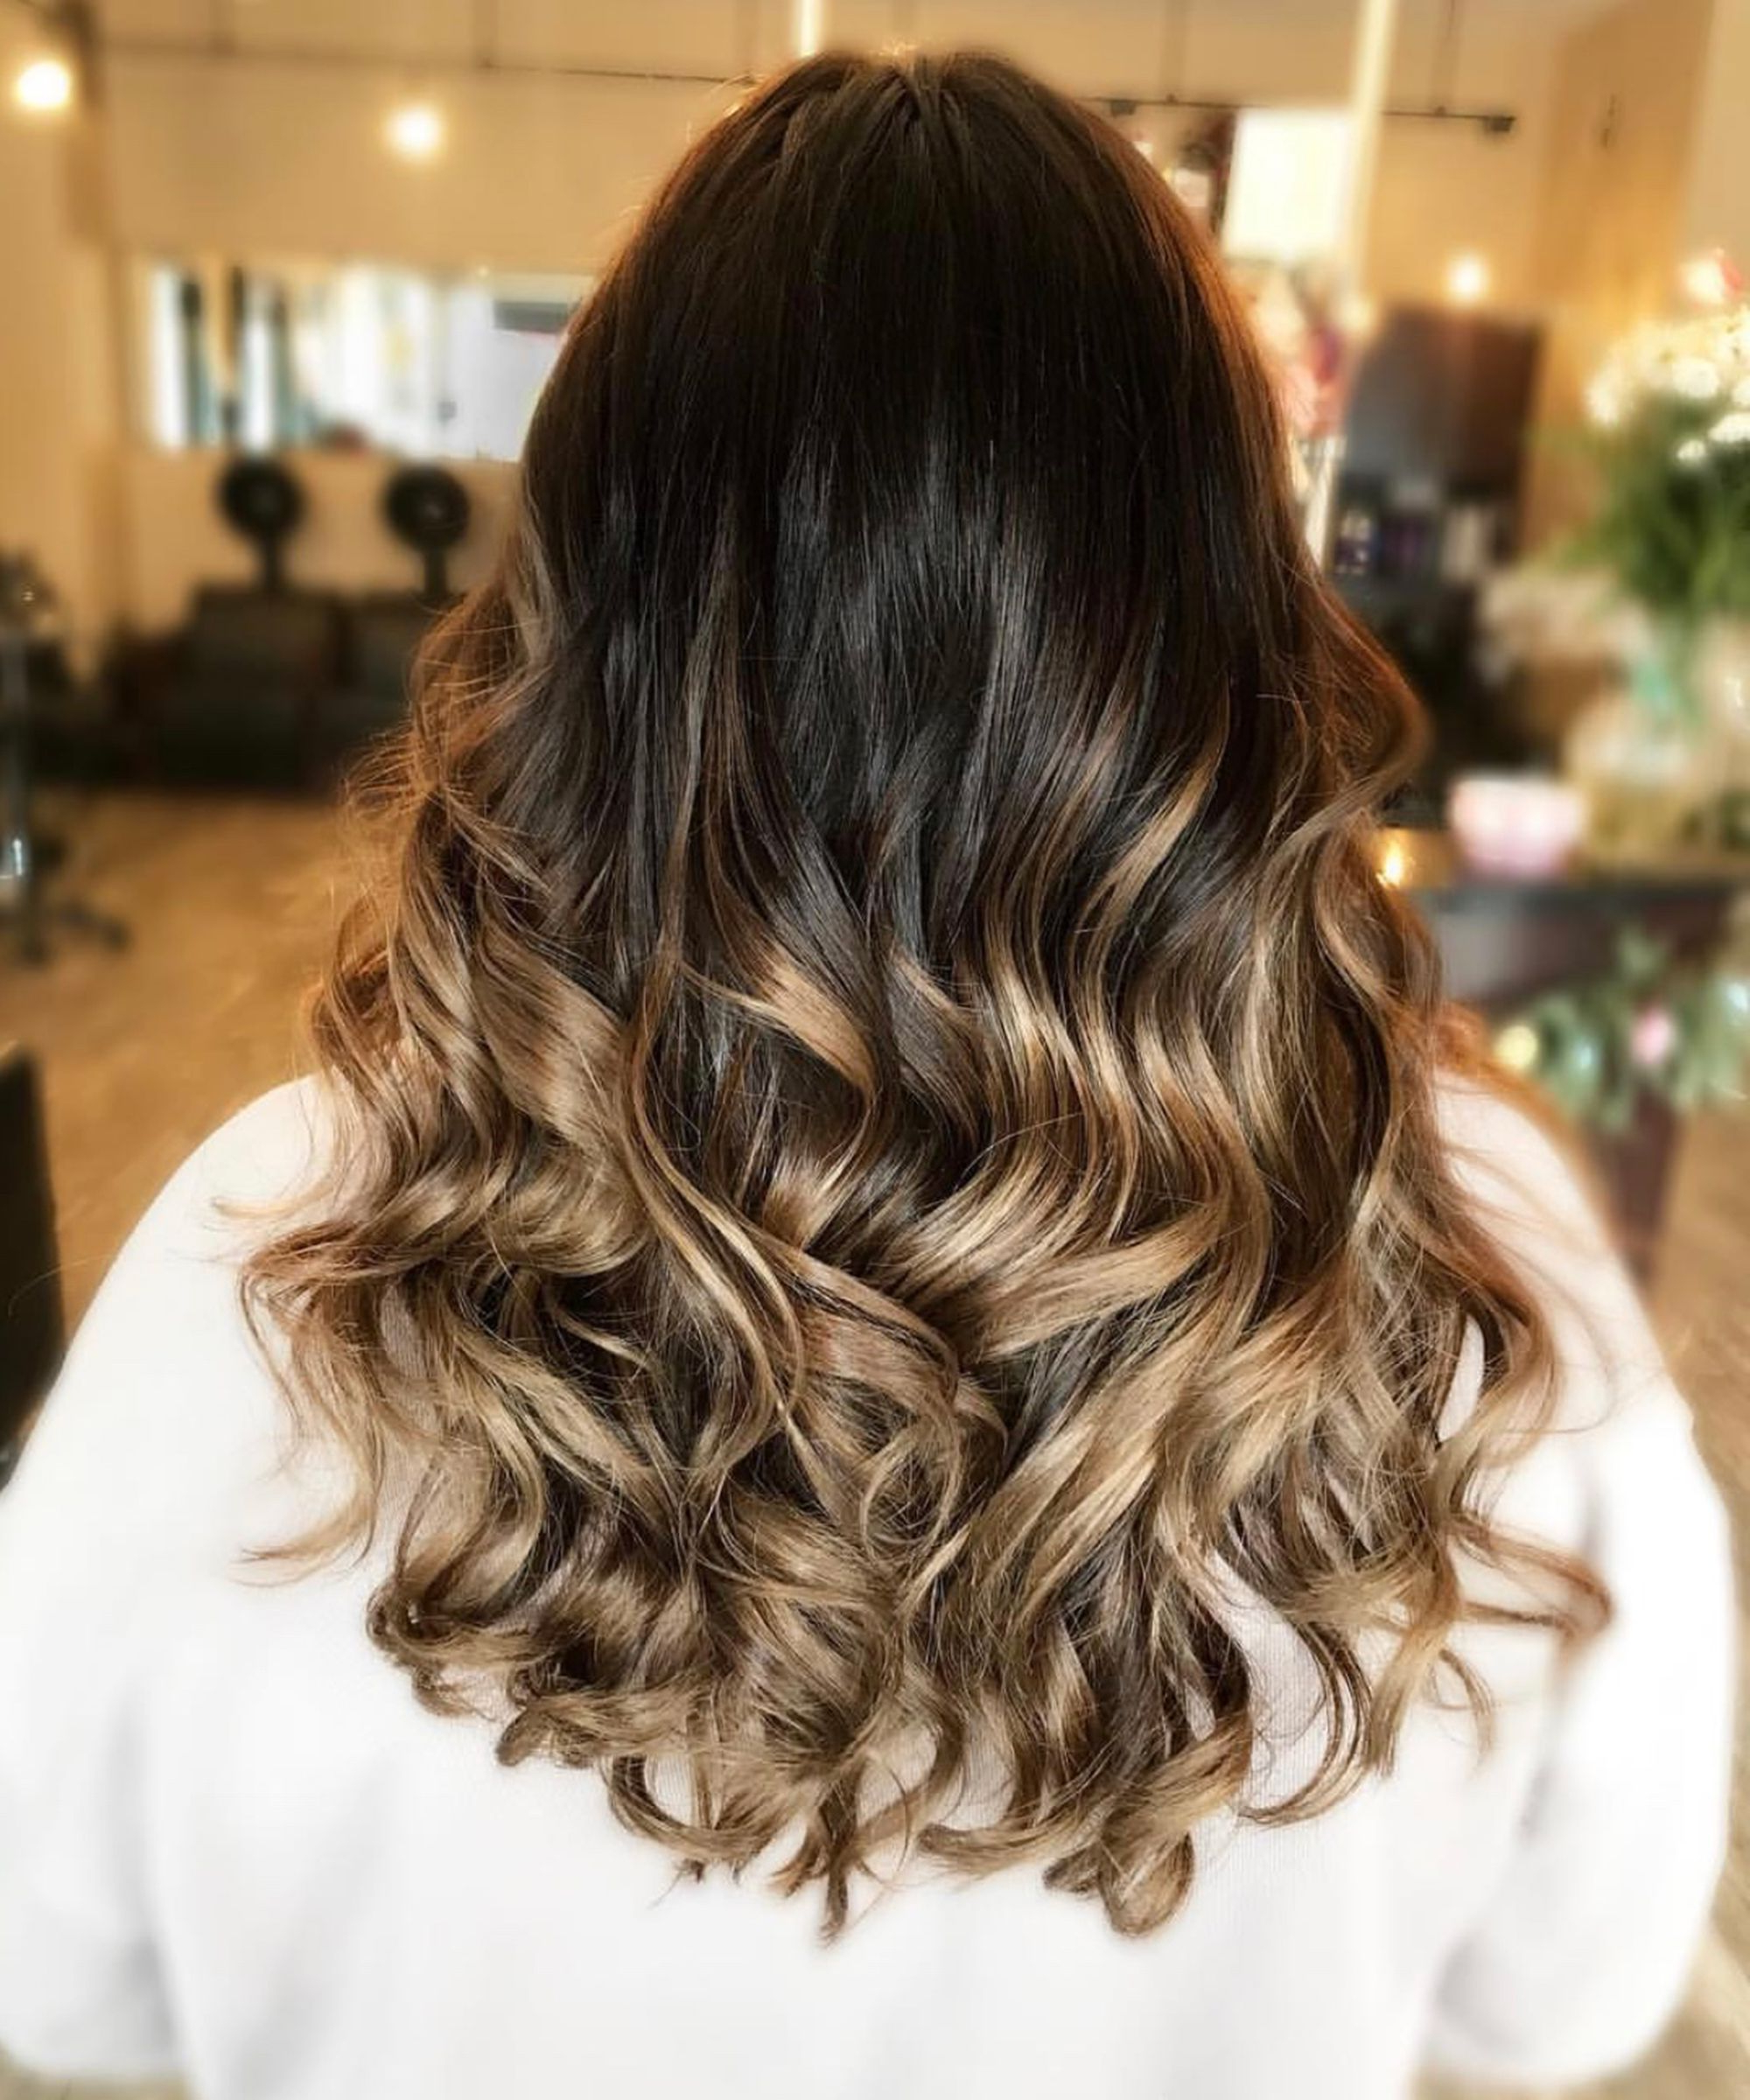 Hair Highlights – Tips, Tricks, Diy With Regard To Most Up To Date Half Up Curly Hairstyles With Highlights (View 12 of 20)